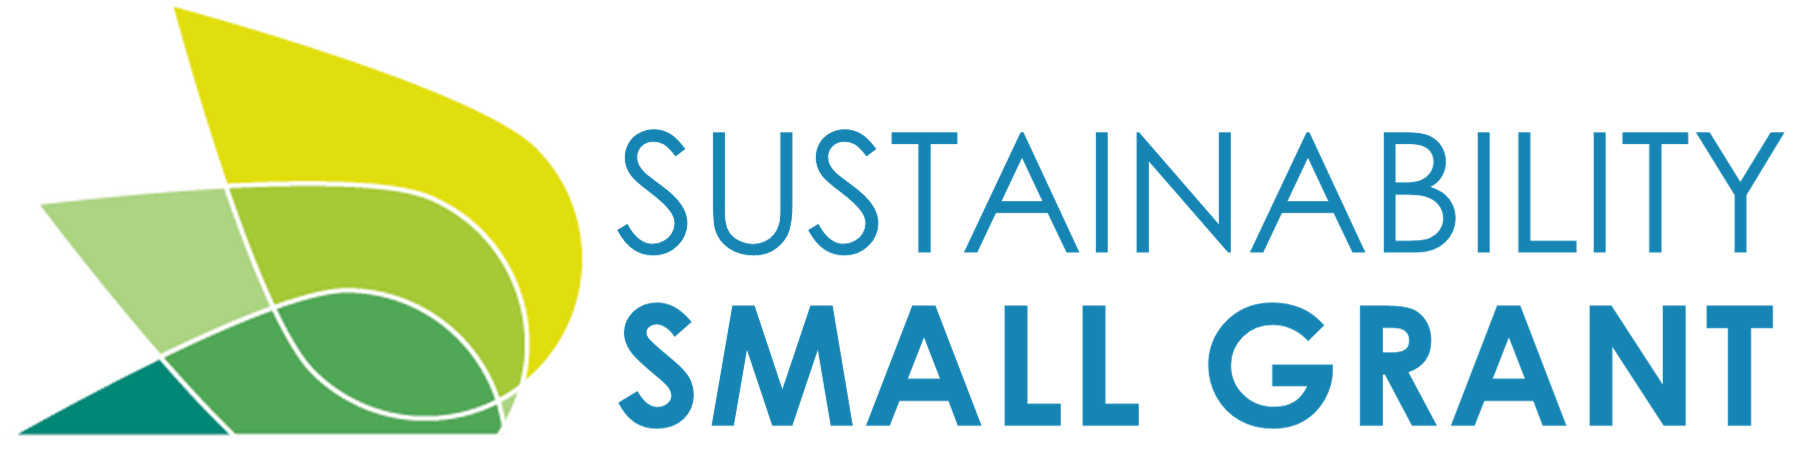 Sustainability Small Grant Logo